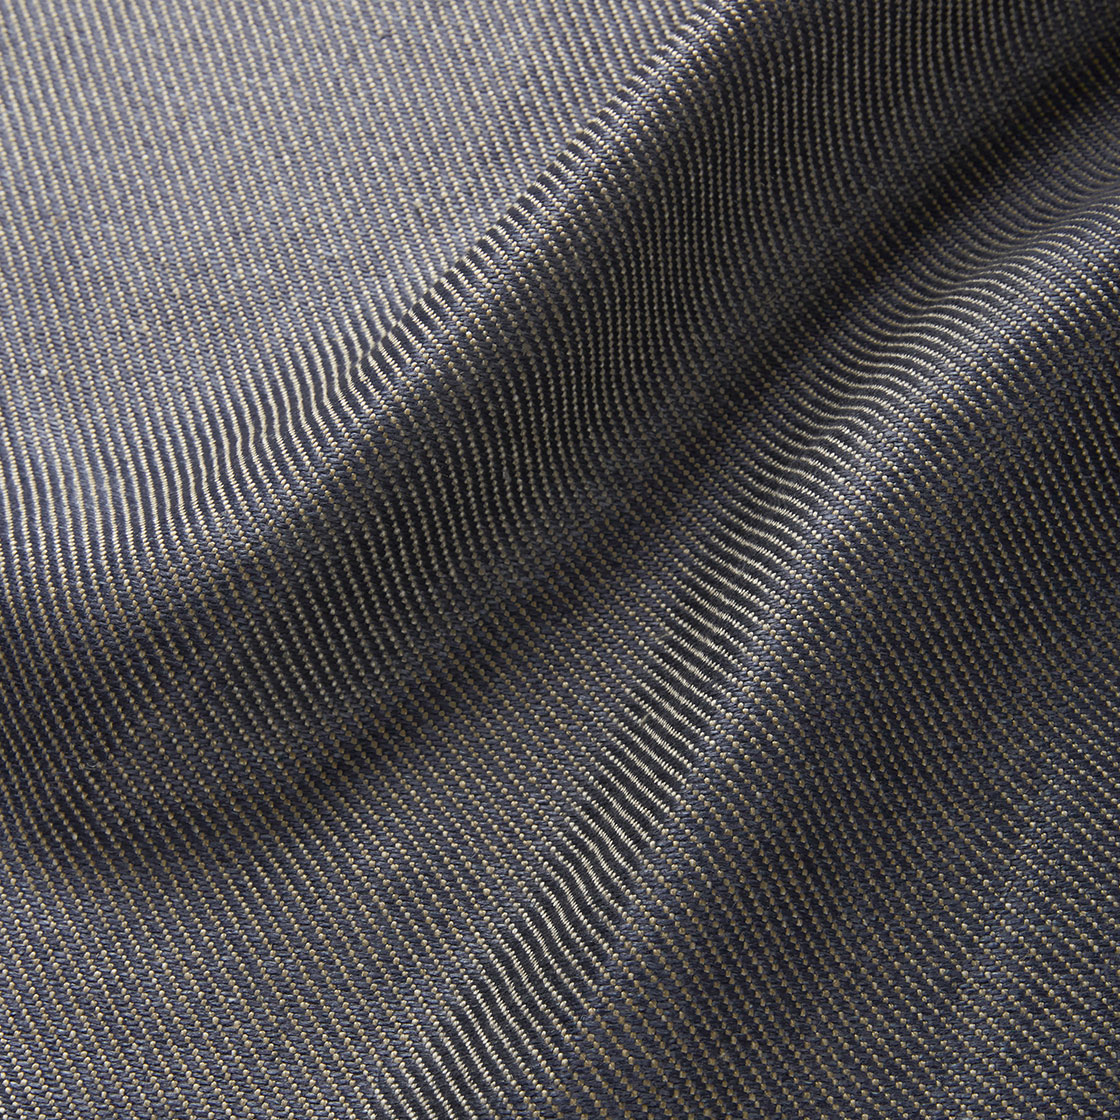 Novara Linen - Ink Blue - Beaumont & Fletcher - Beaumont & Fletcher